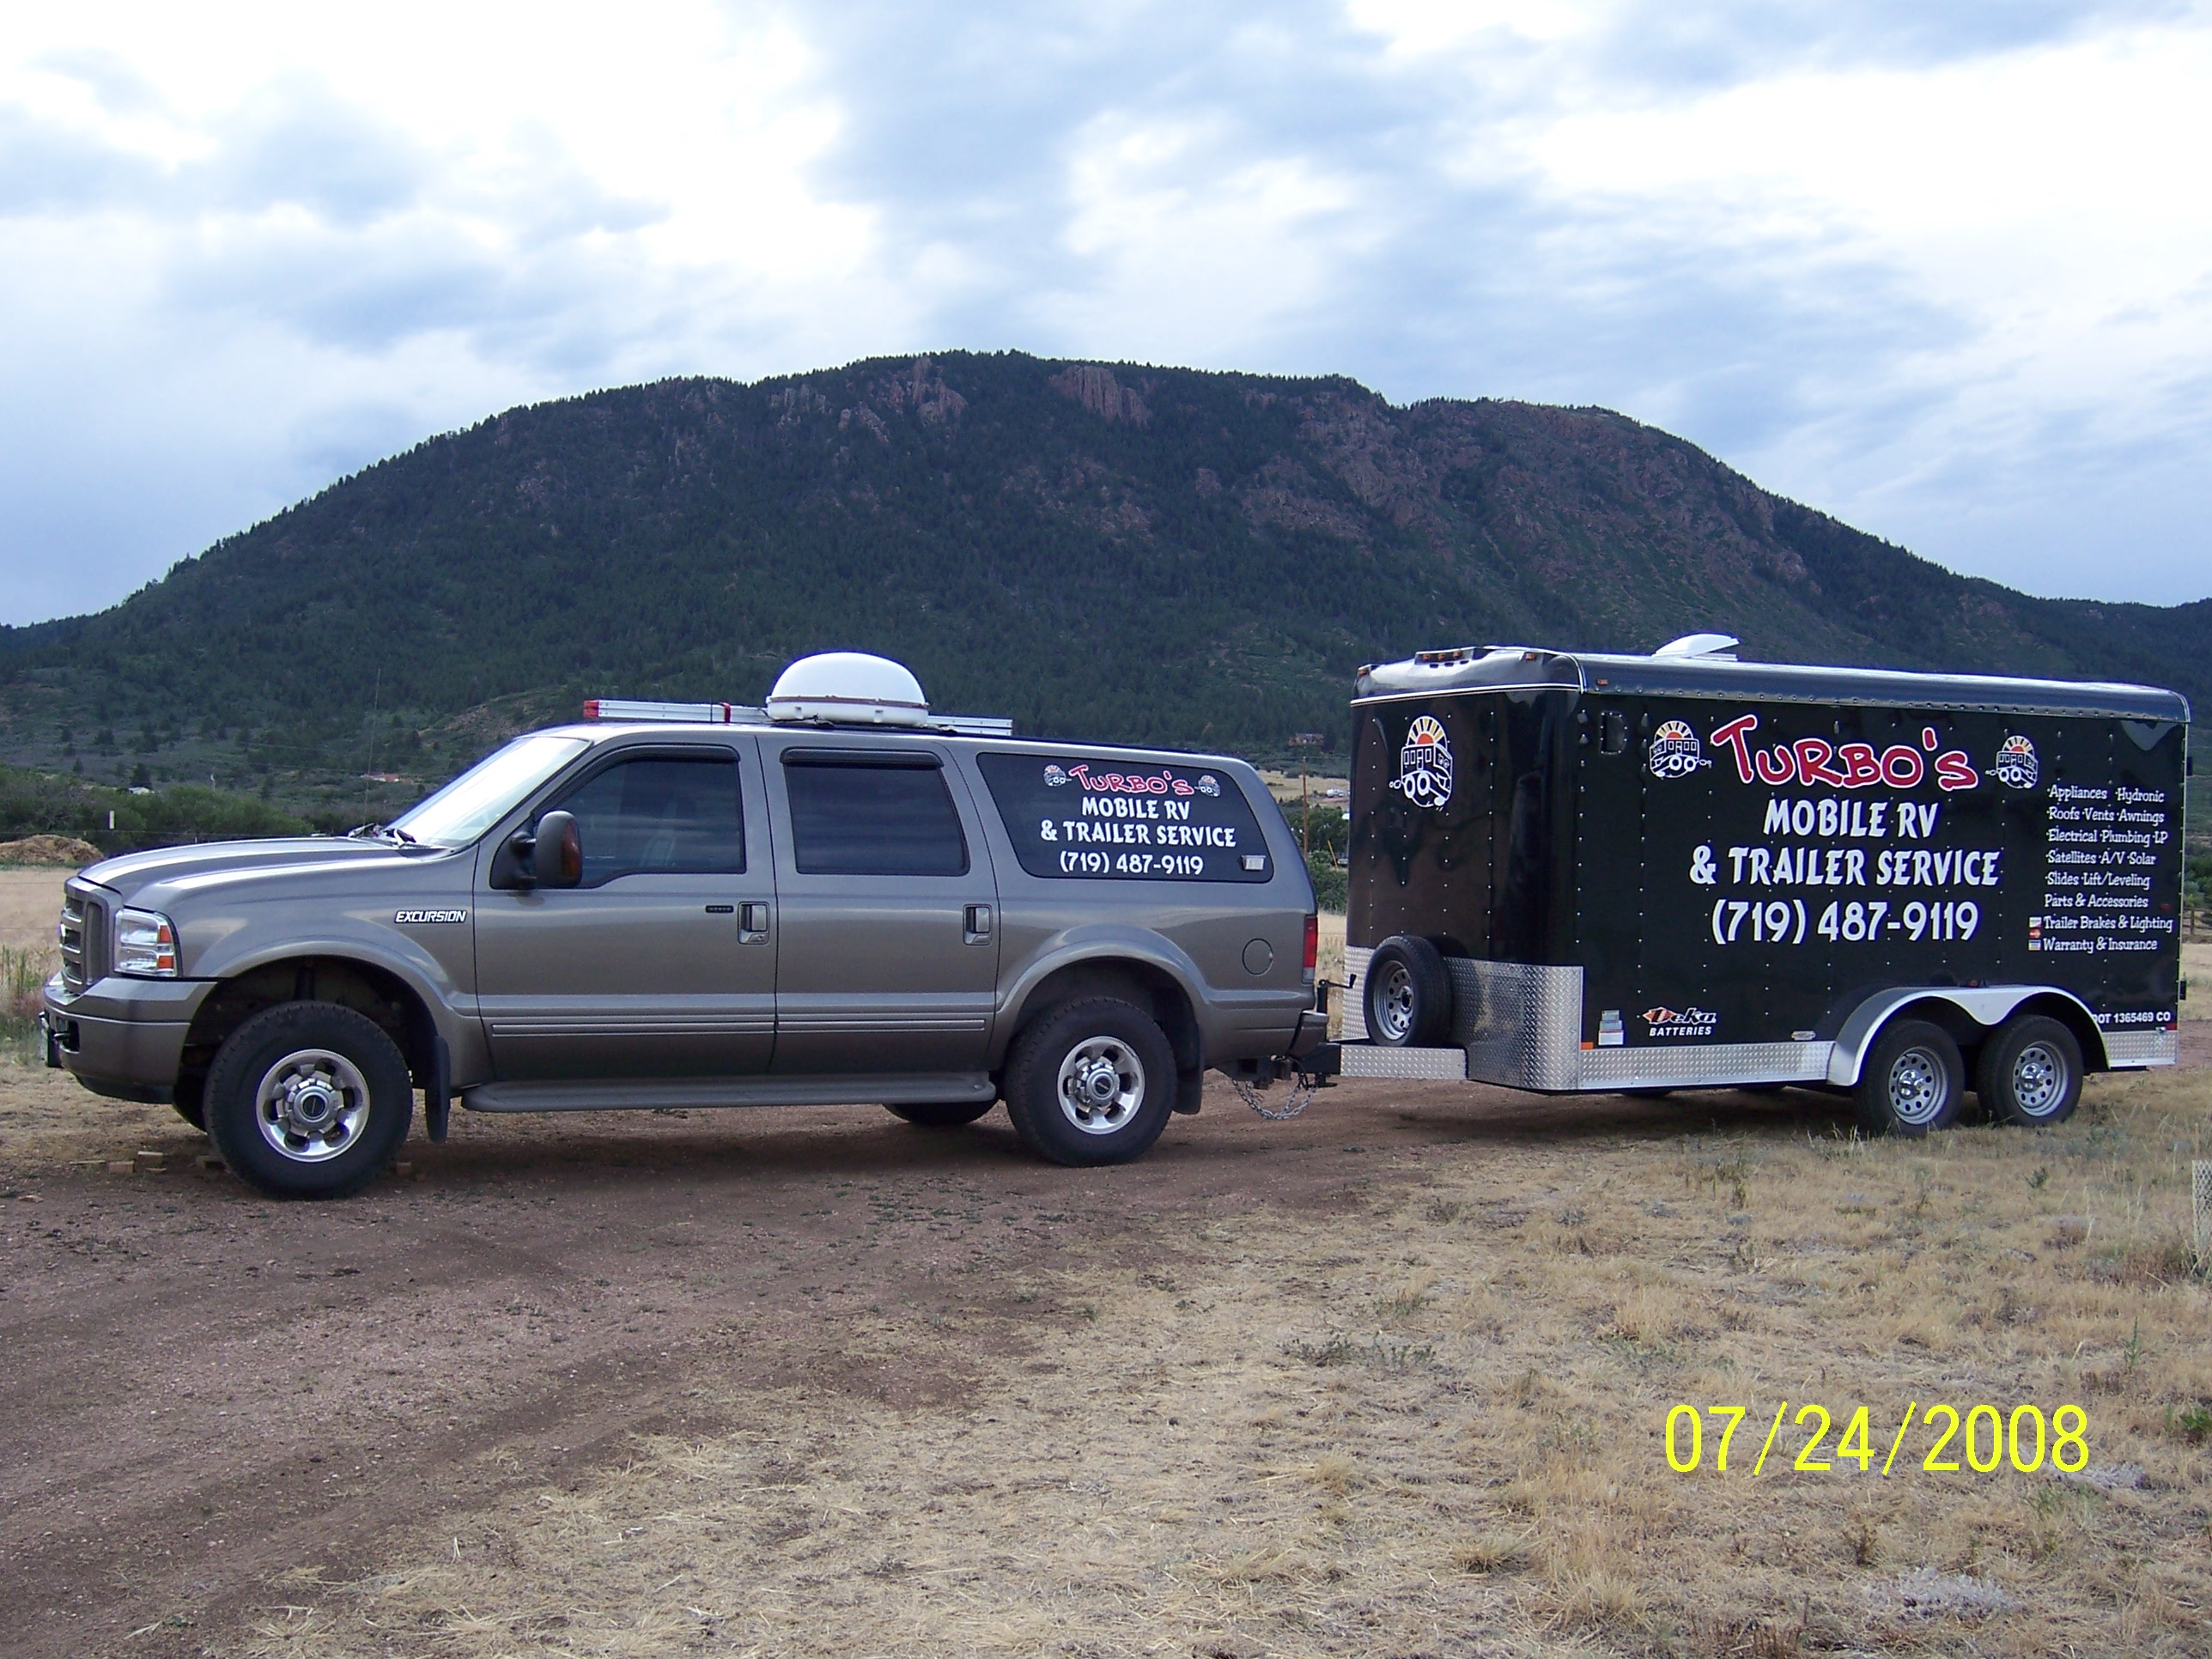 Turbo's Mobile Rv Svc